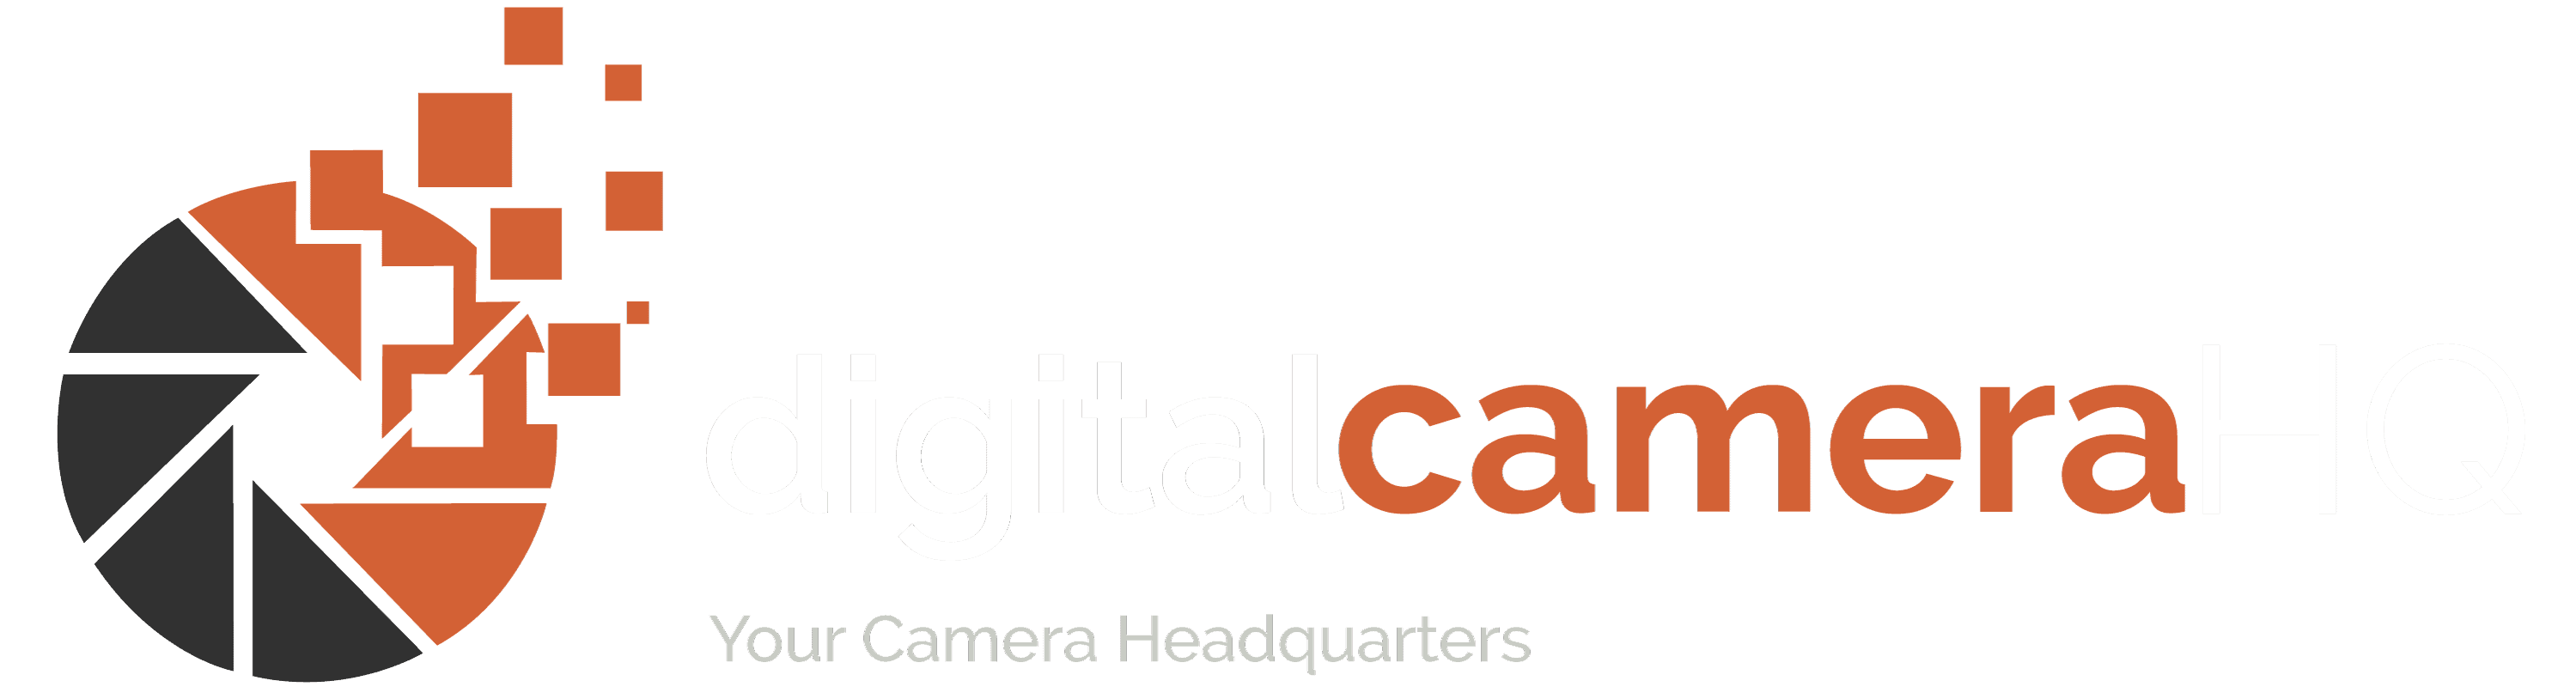 Digital Camera HQ